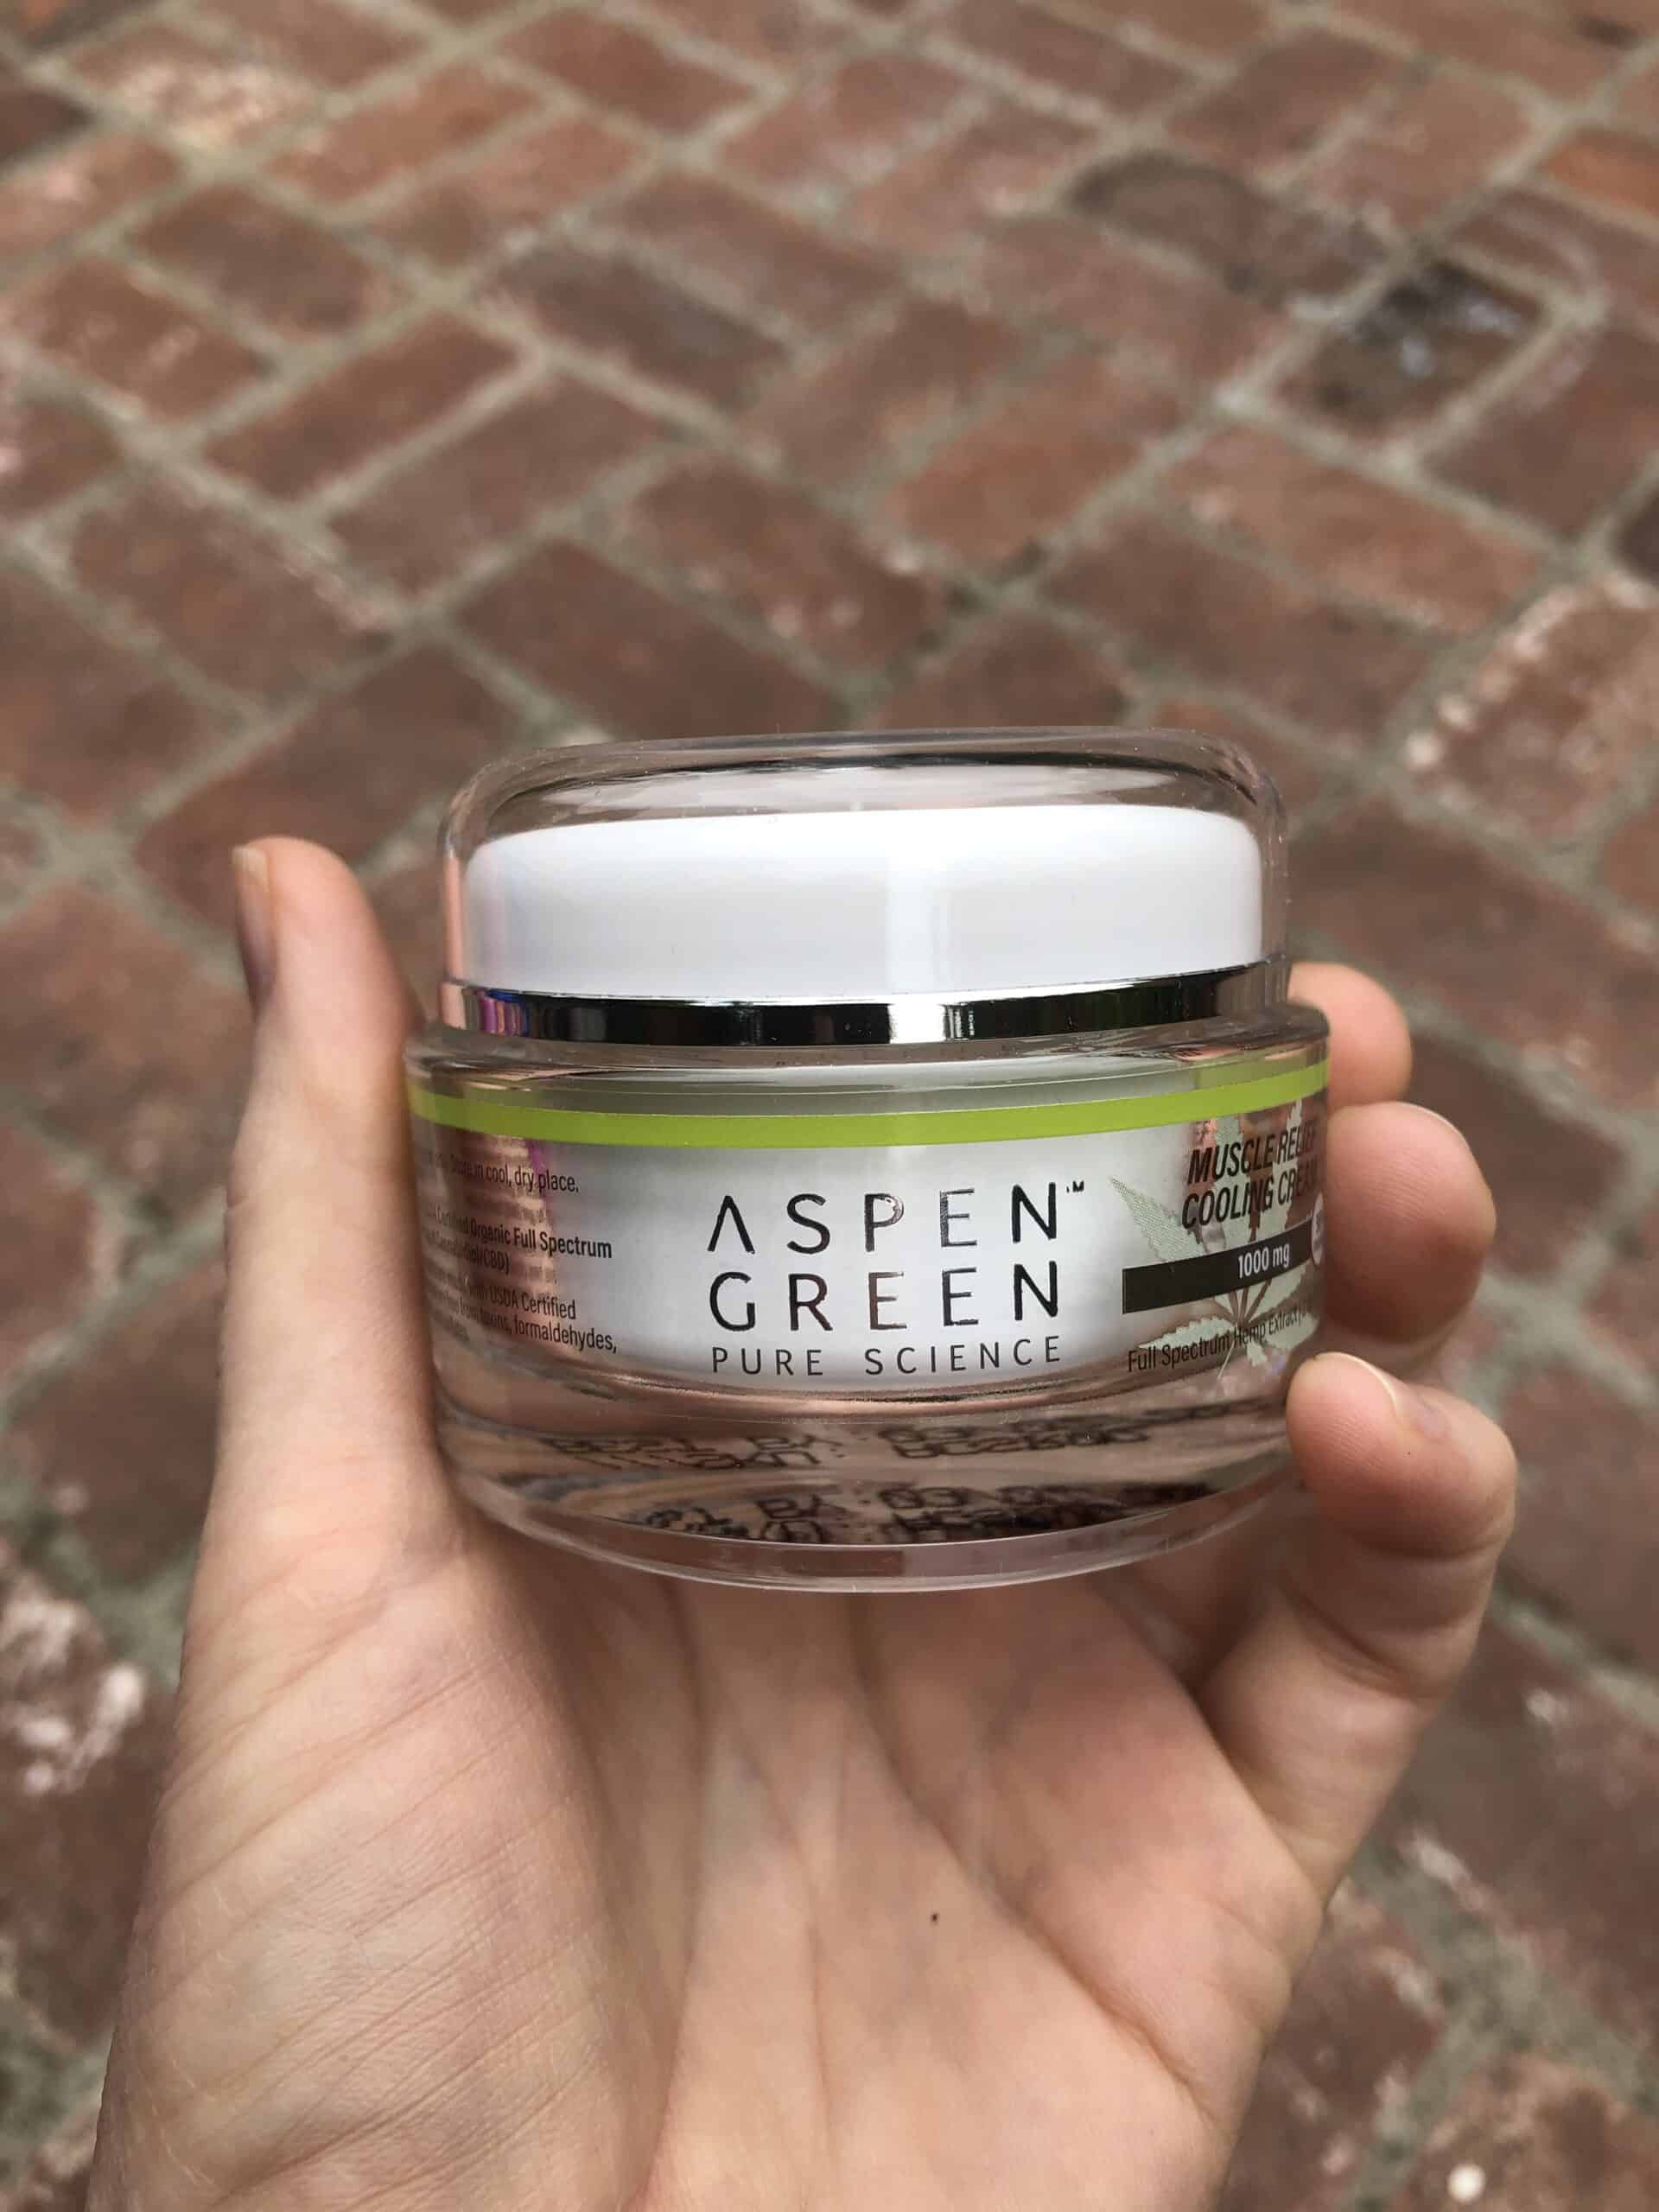 aspen green muscle relief cooling cream save on cannabis beauty shot